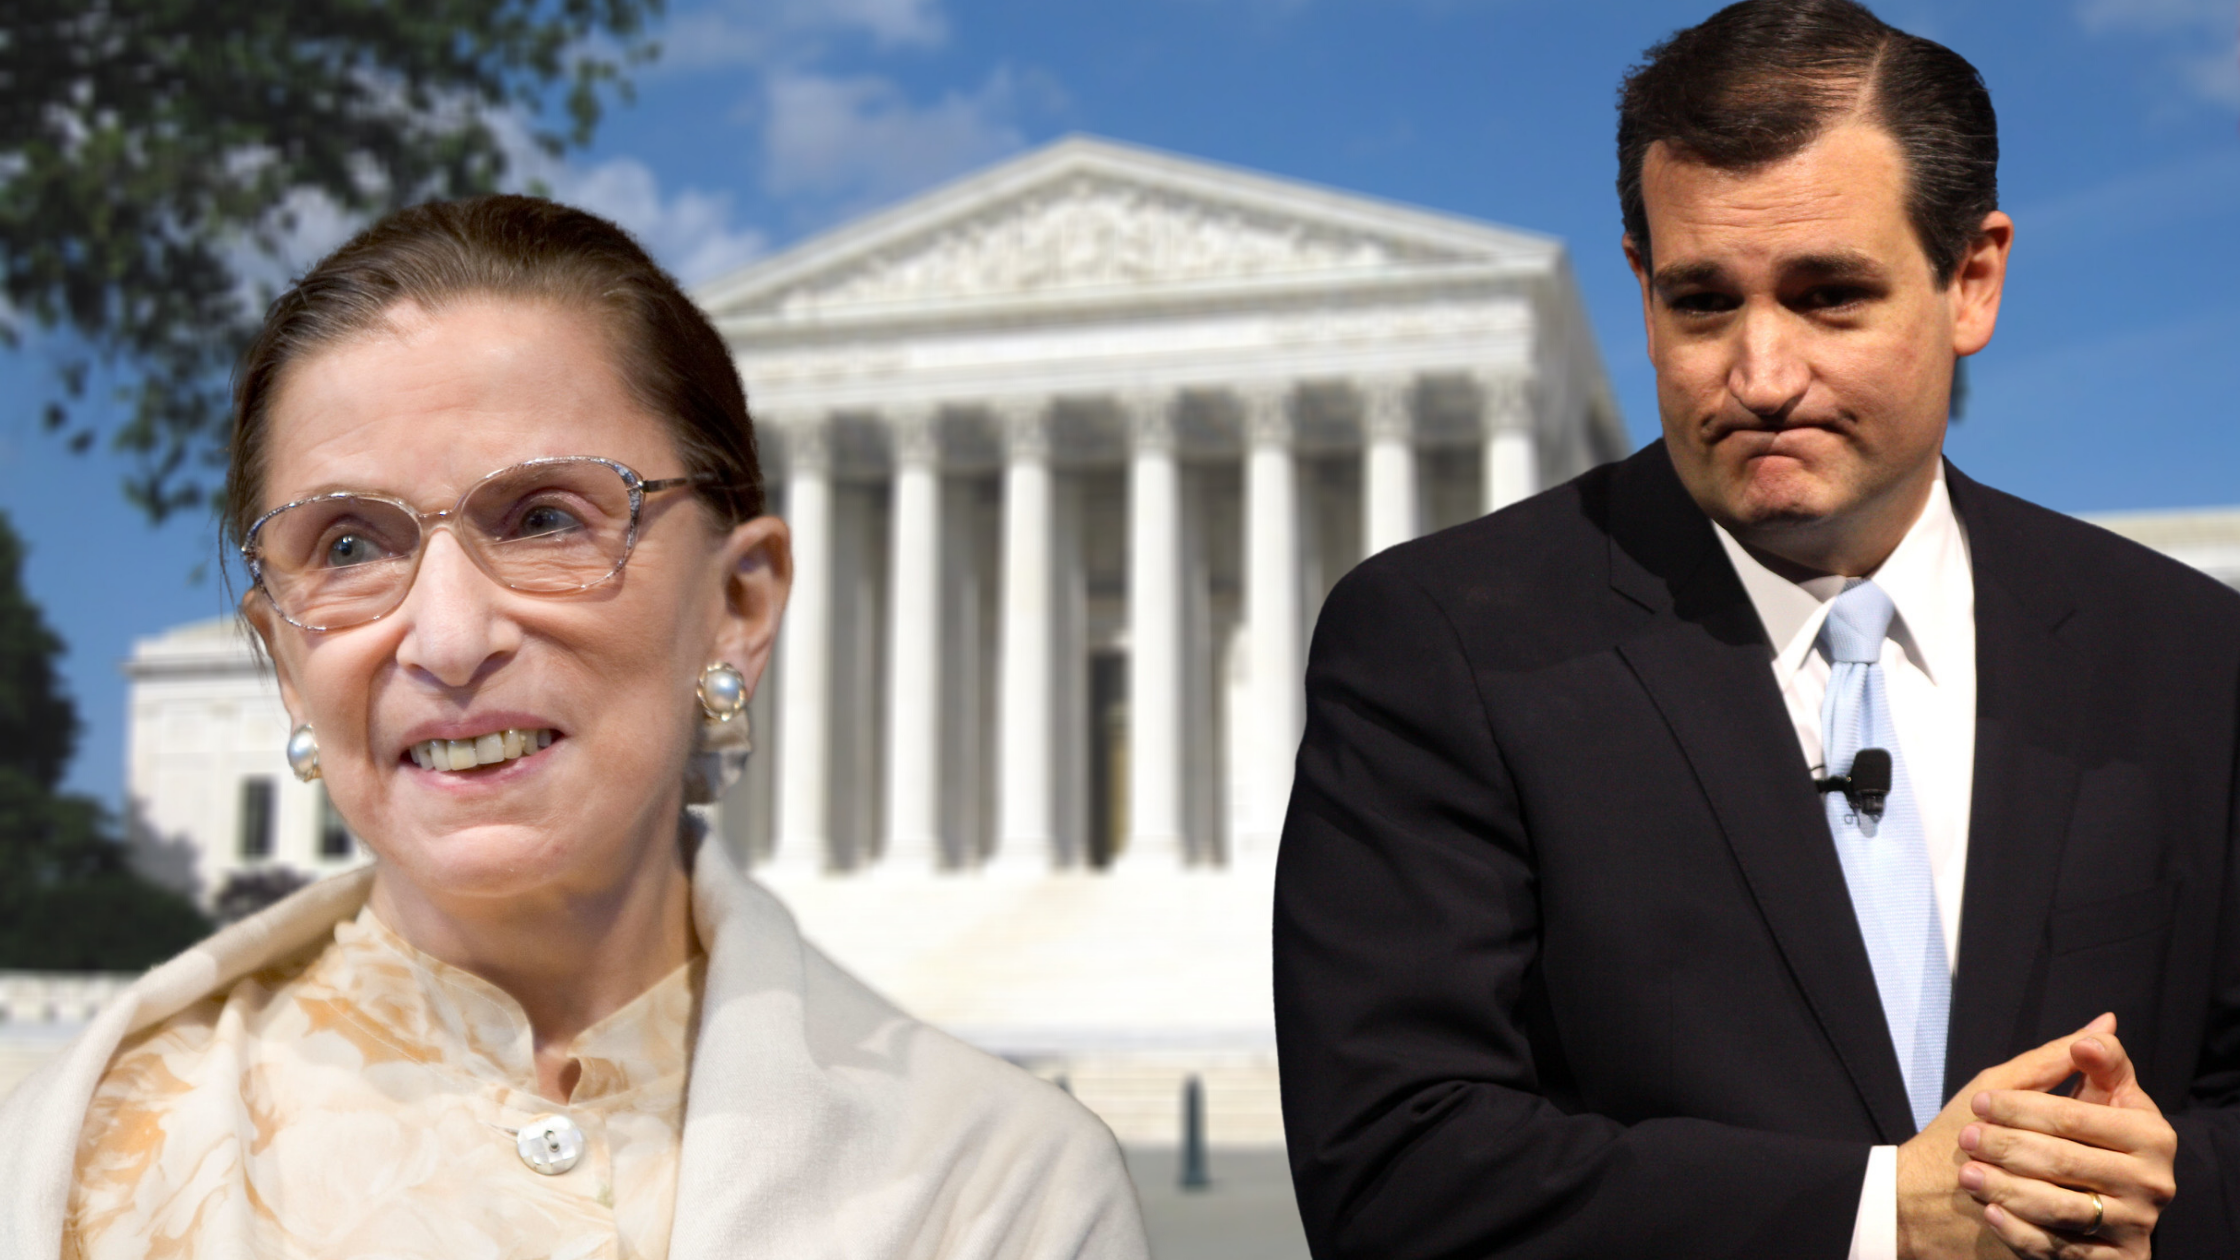 Why Even RBG Would Have (Probably) Supported Ted Cruz's Common-Sense Constitutional Amendment Banning Court-Packing